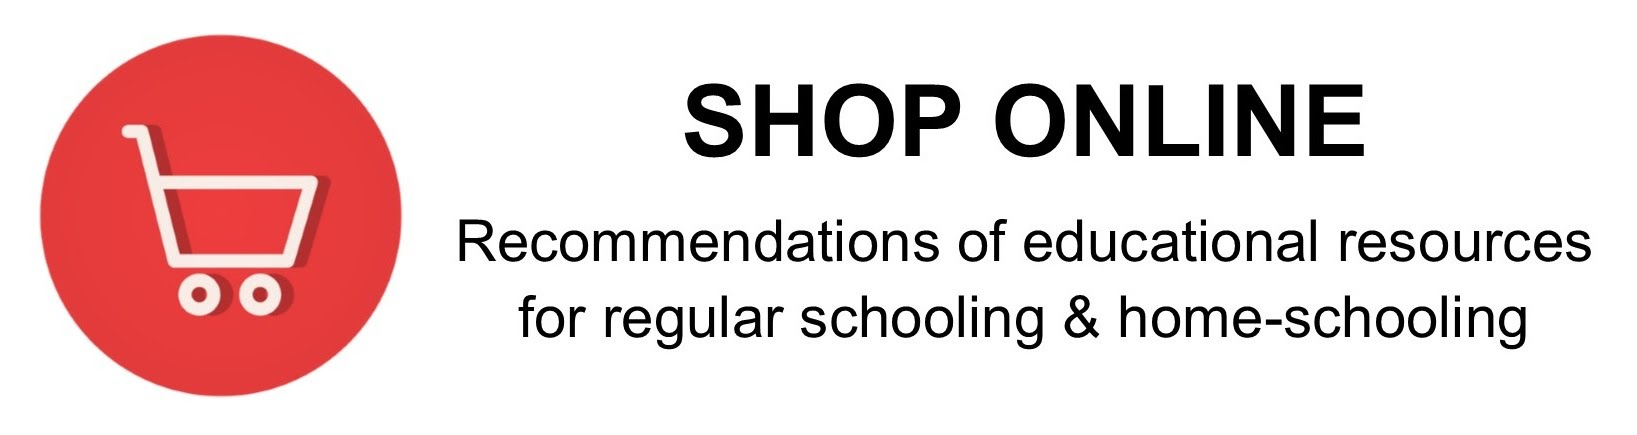 shop online for educational resources